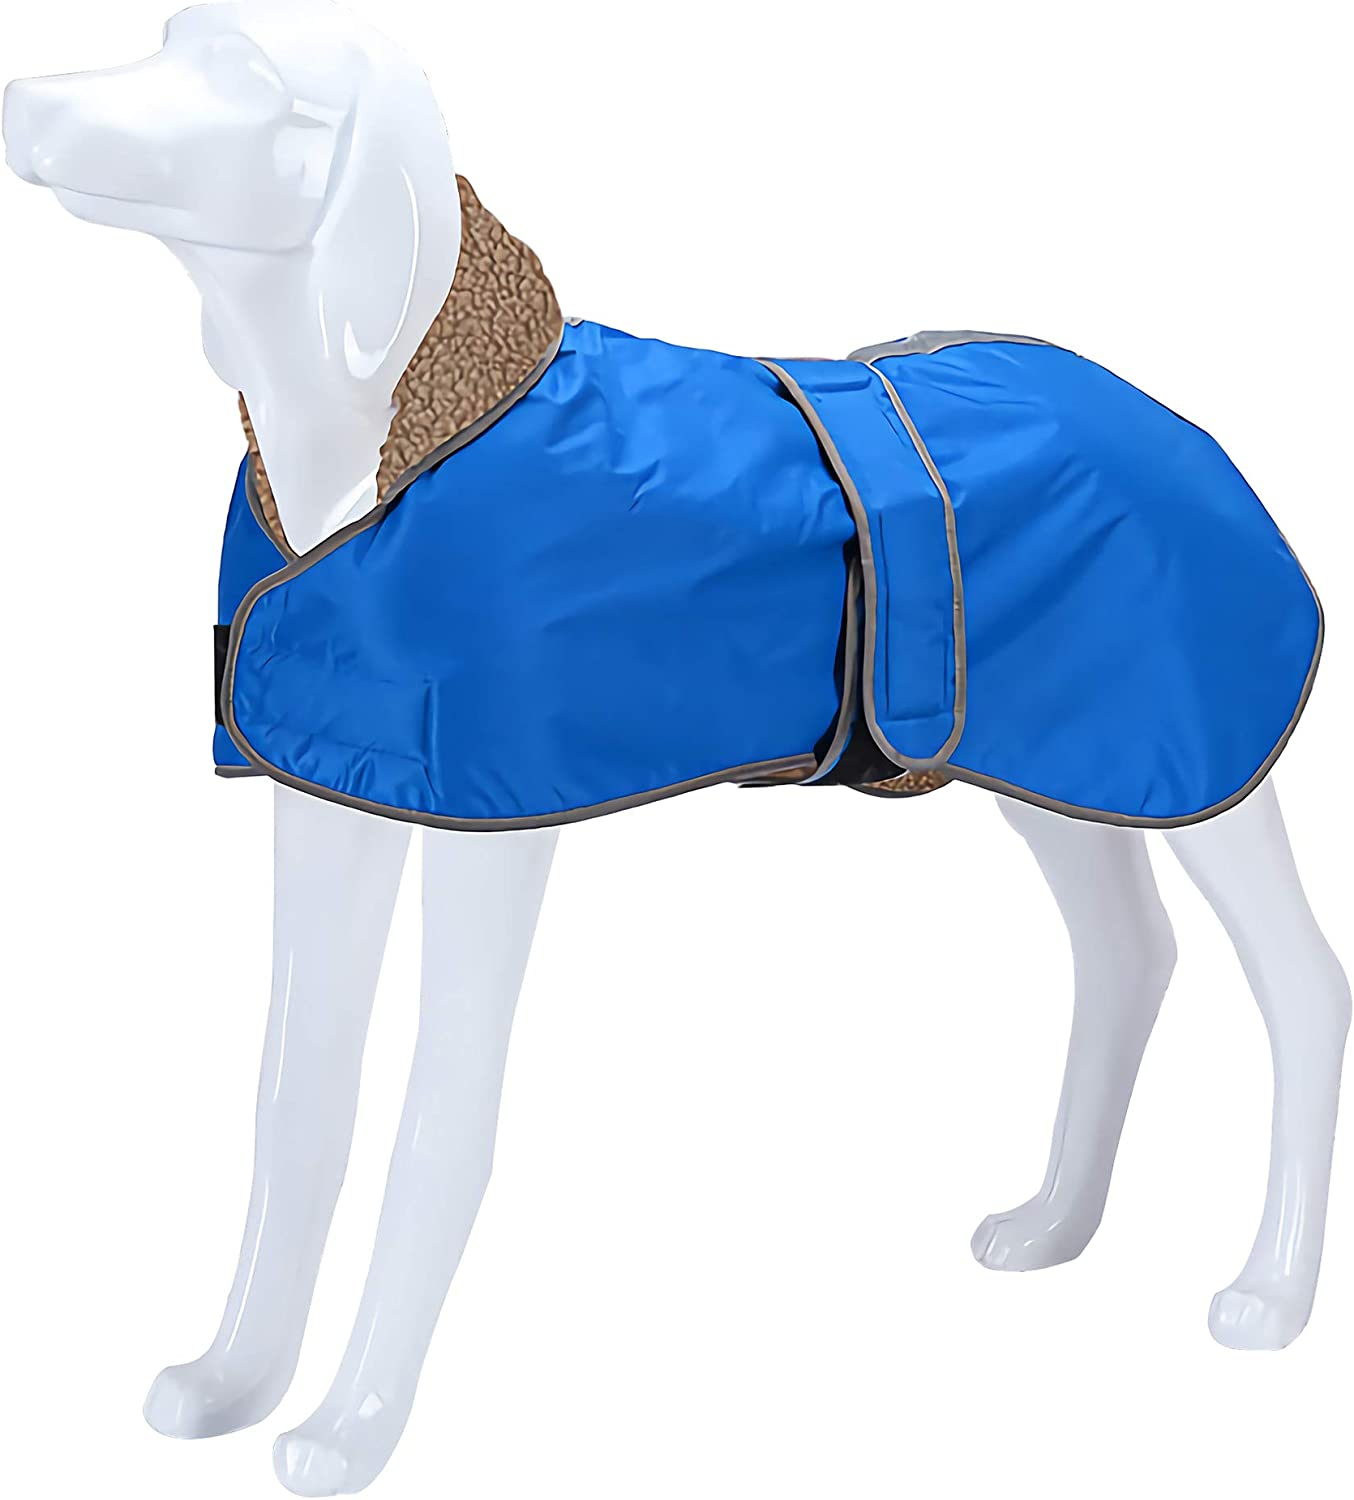 Sale price Dog Winter Easy-to-use Coat Waterproof Warm Lining Puppy Fleece Jacket with